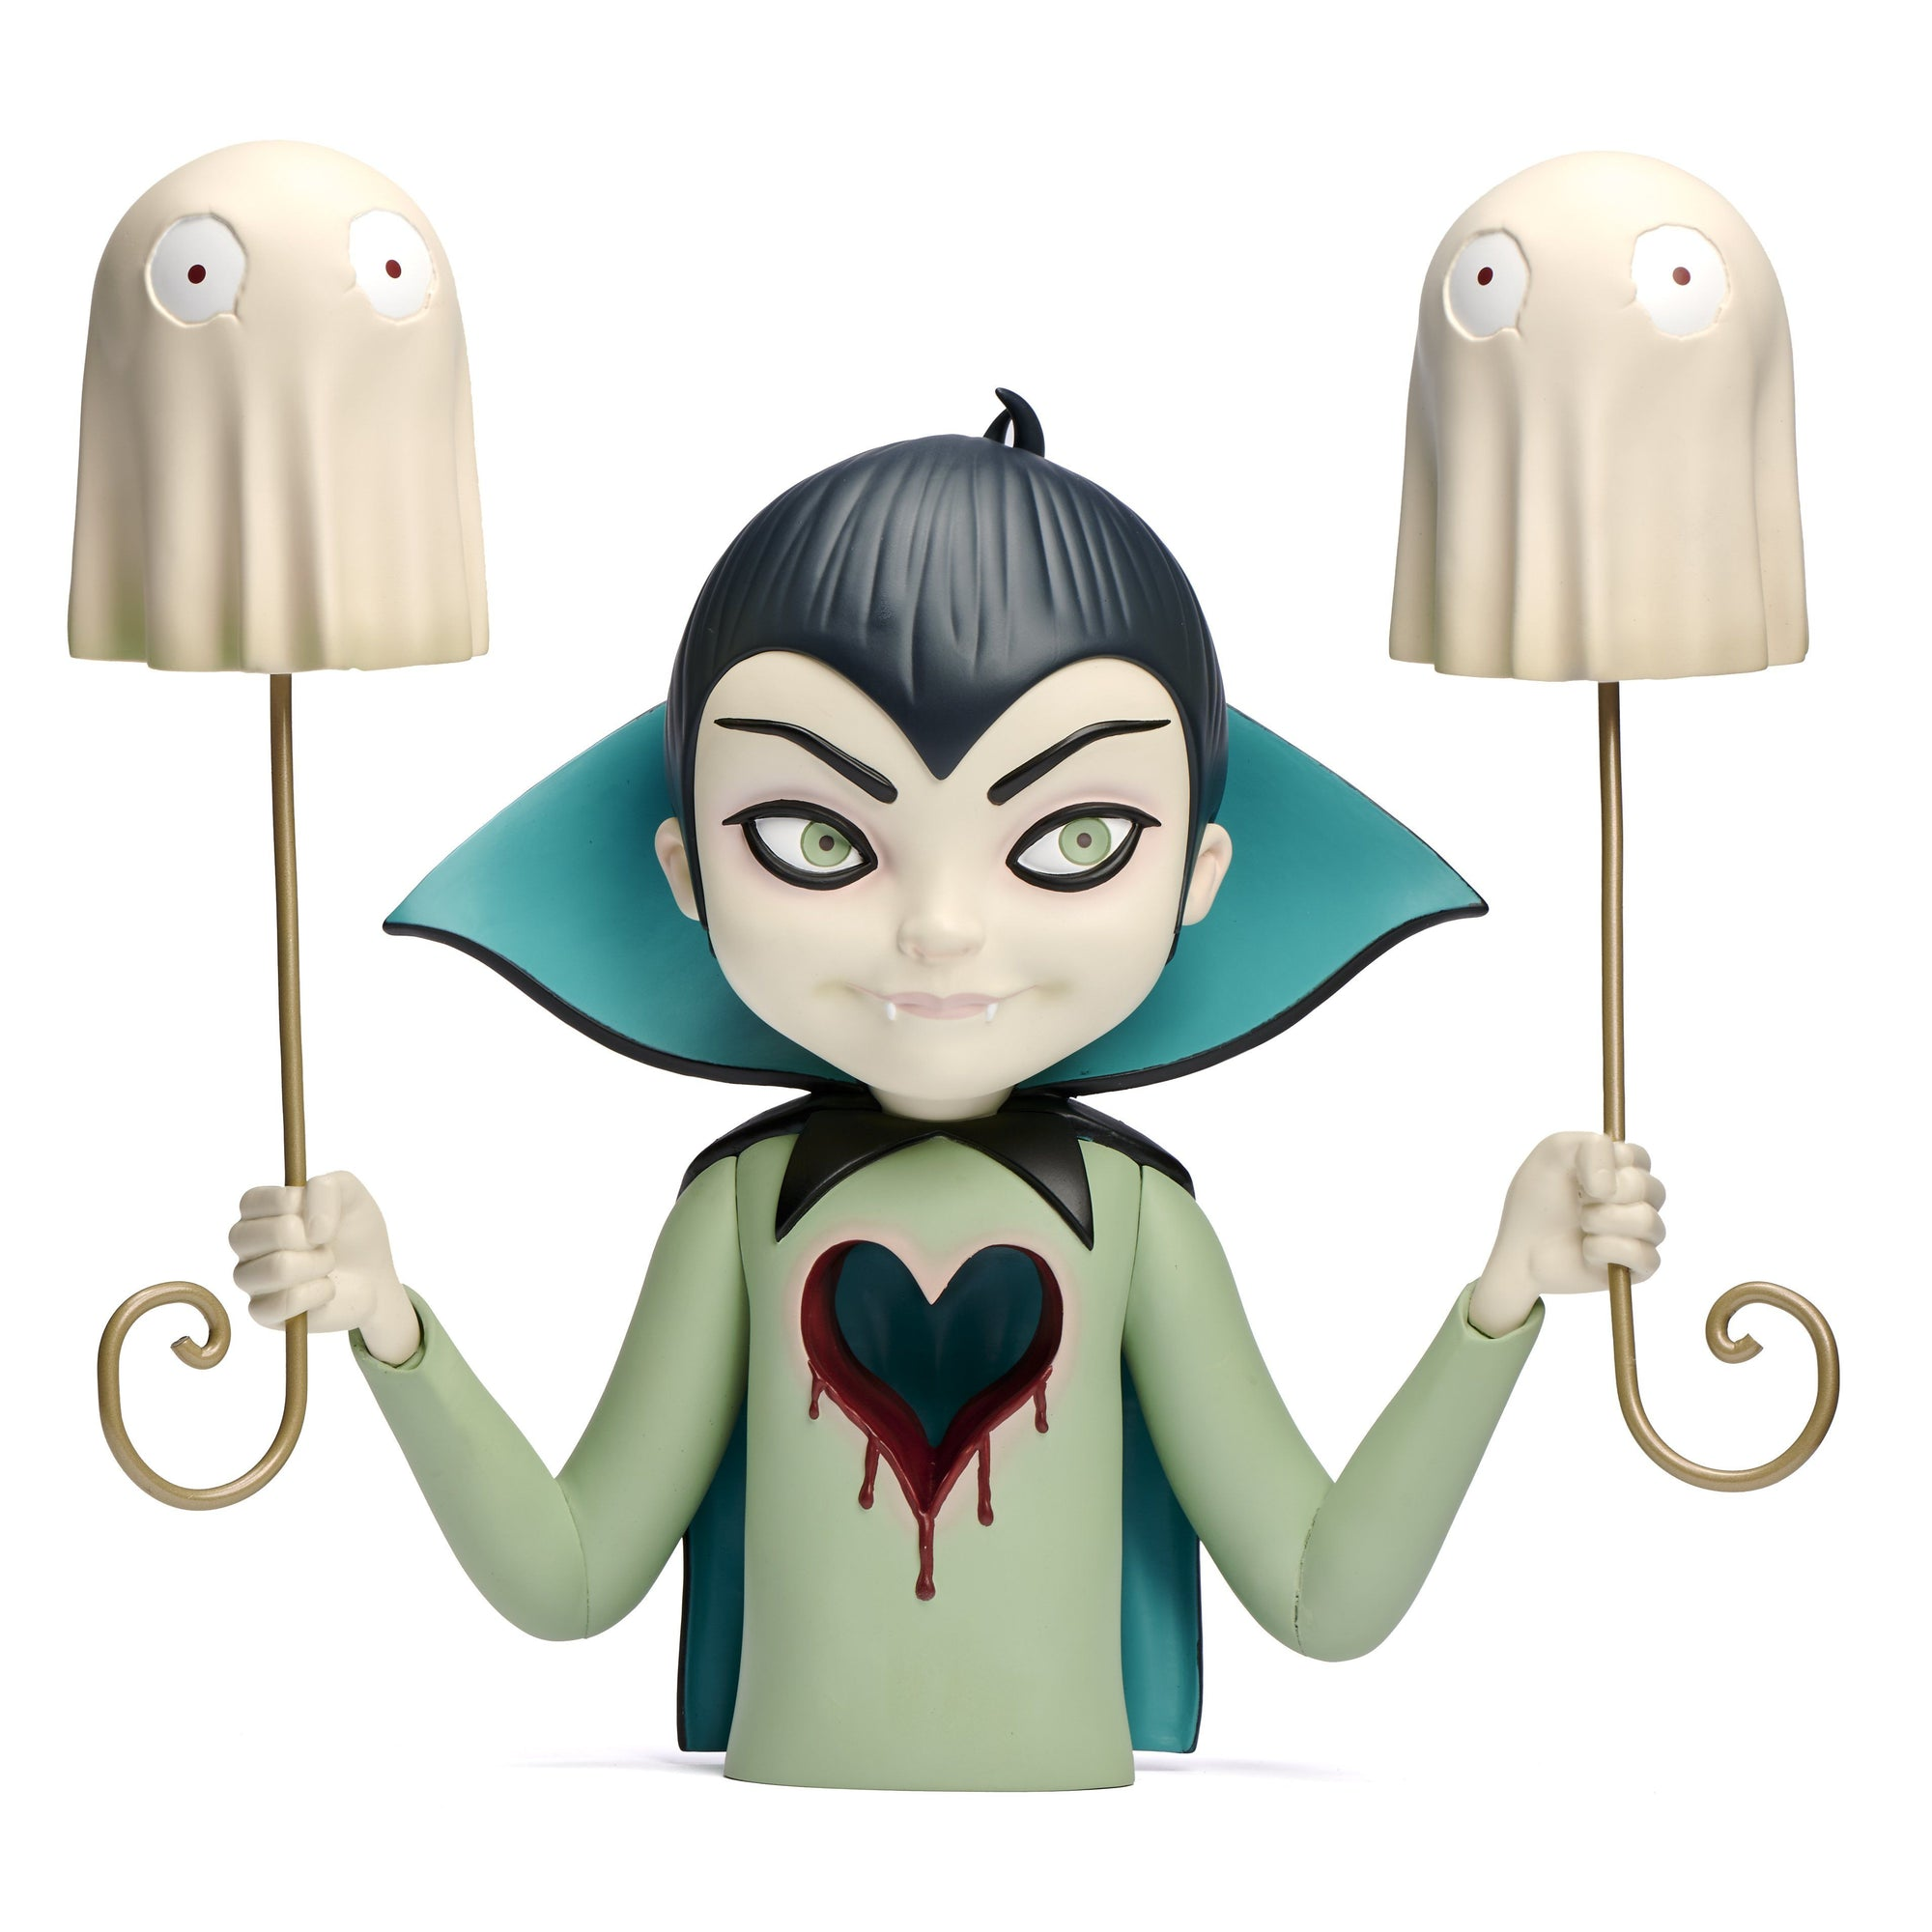 George's Halloween Portrait Vinyl Art Toy by Tara McPherson x Martian Toys George's Halloween Portrait Martian Toys